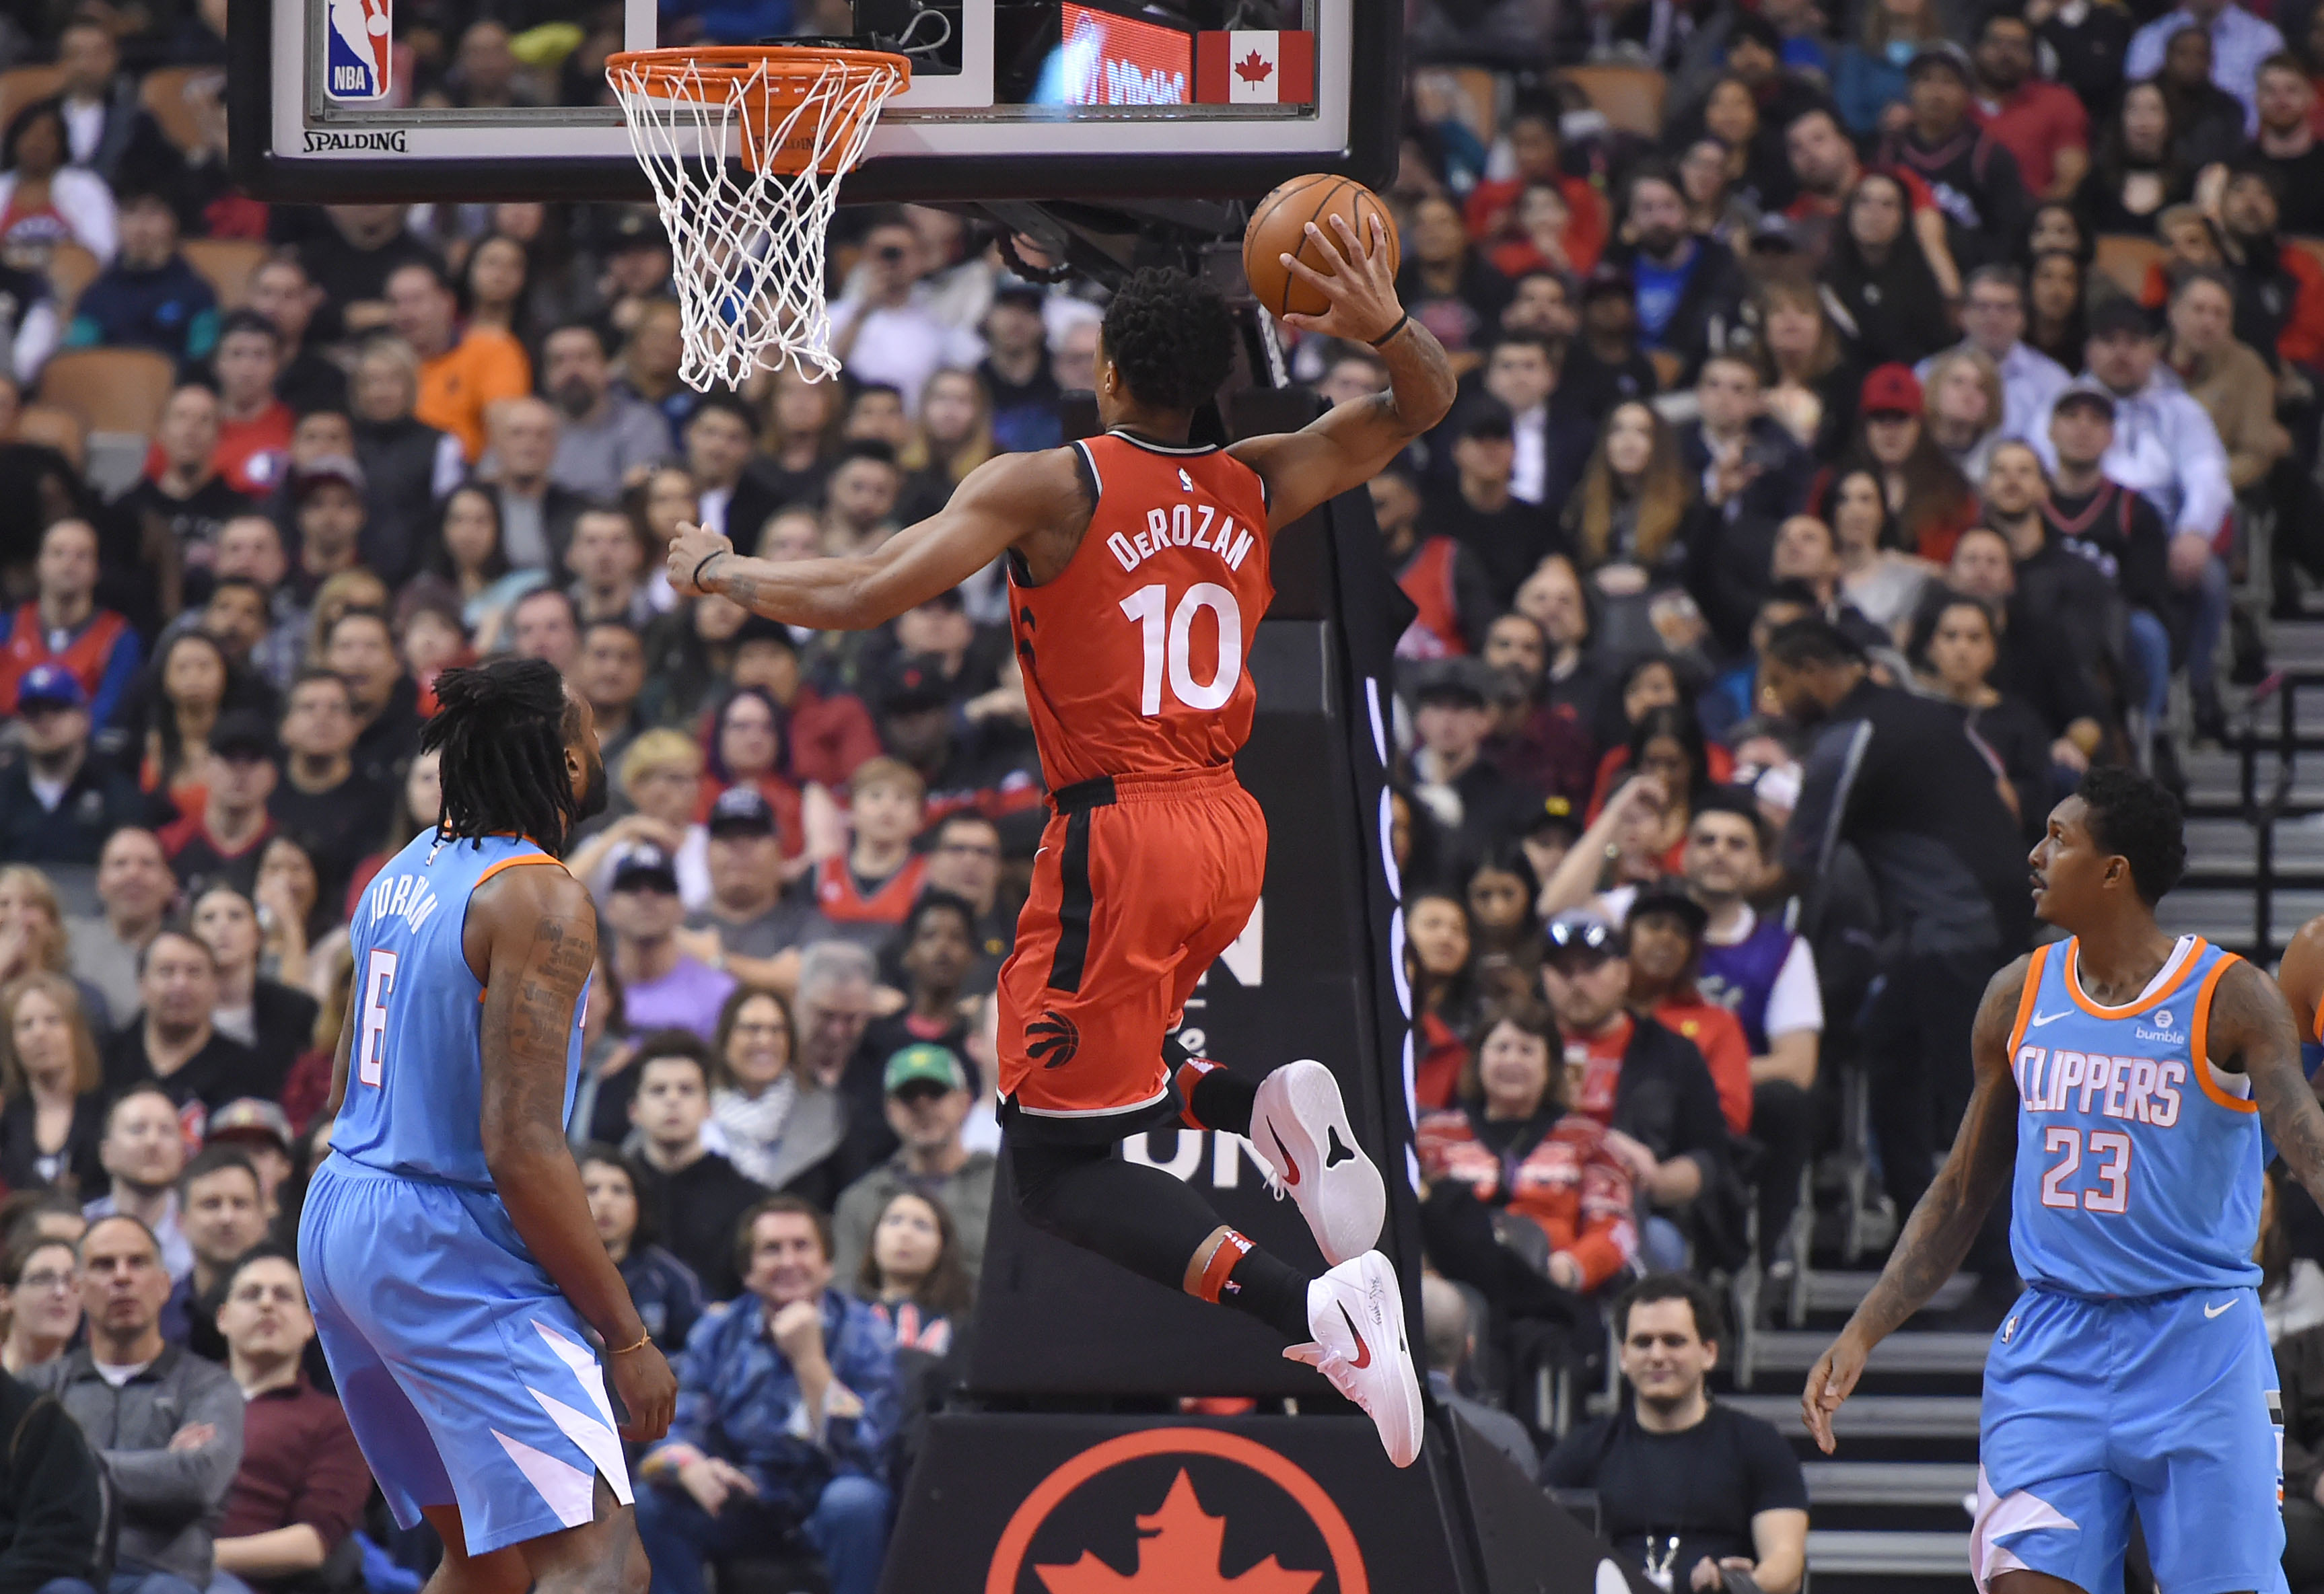 2018-03-25t225936z_1580059677_nocid_rtrmadp_3_nba-los-angeles-clippers-at-toronto-raptors